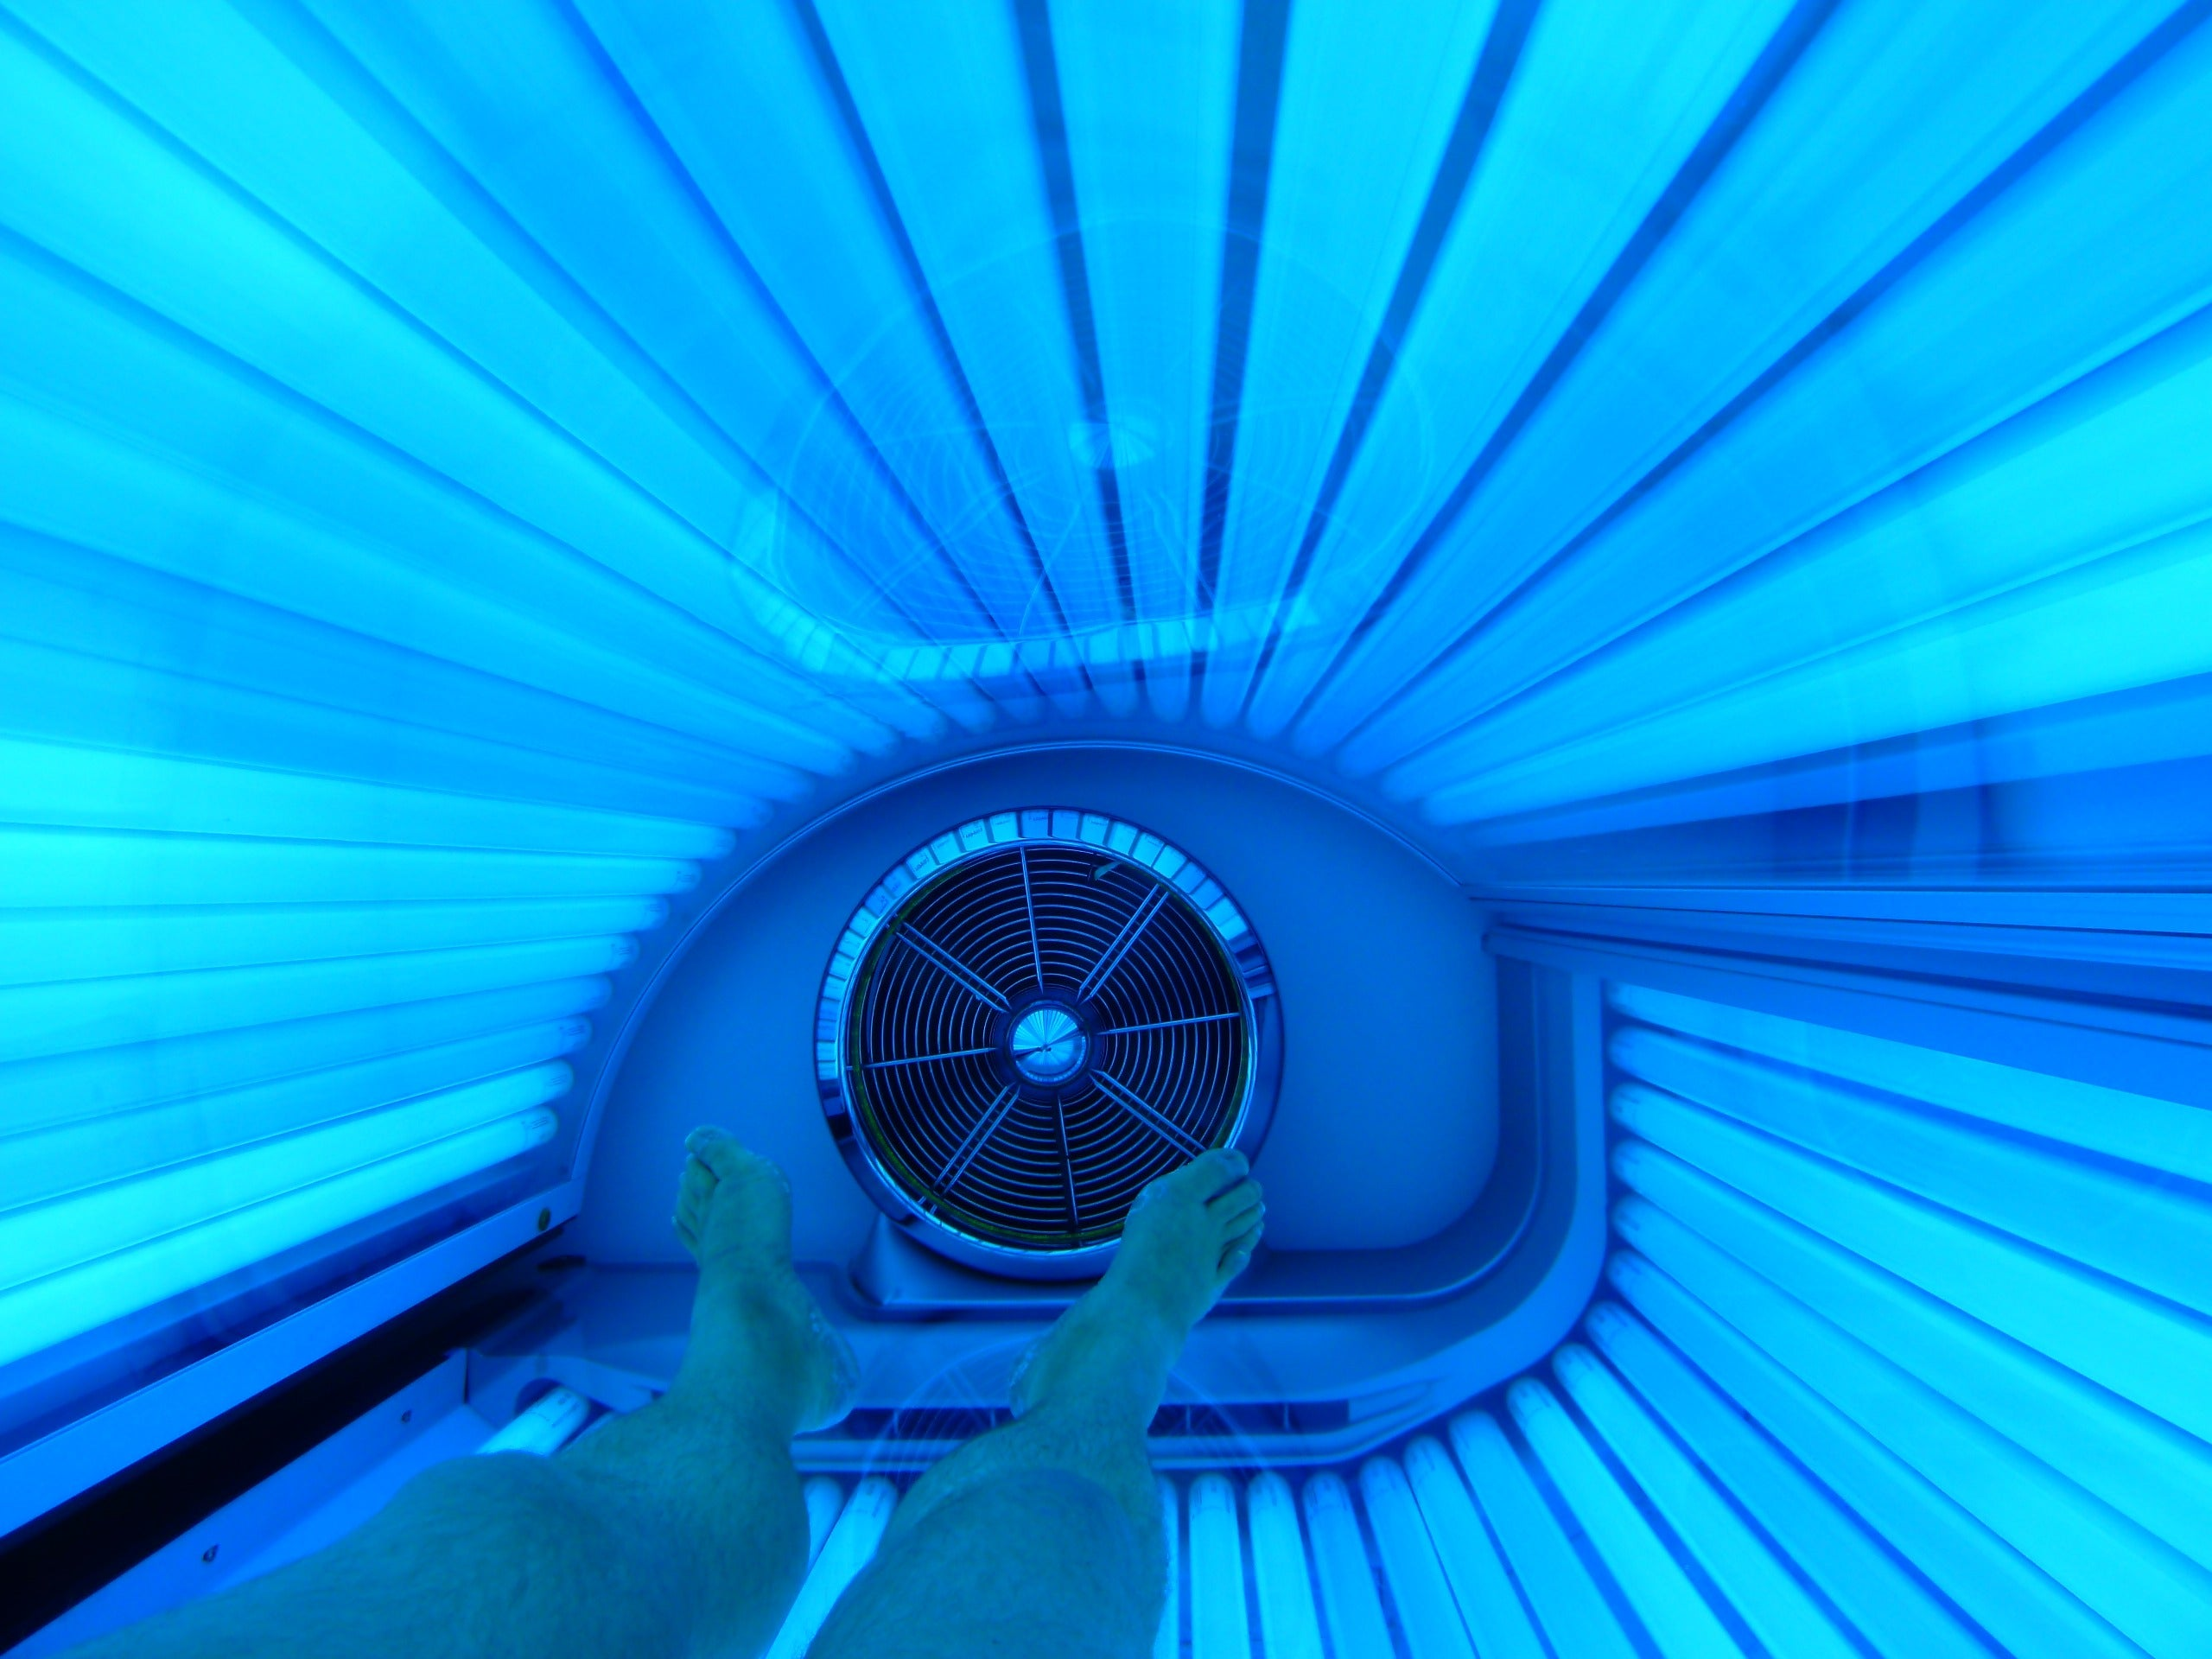 BRUSH ON BLOCK® image inside of tanning bed